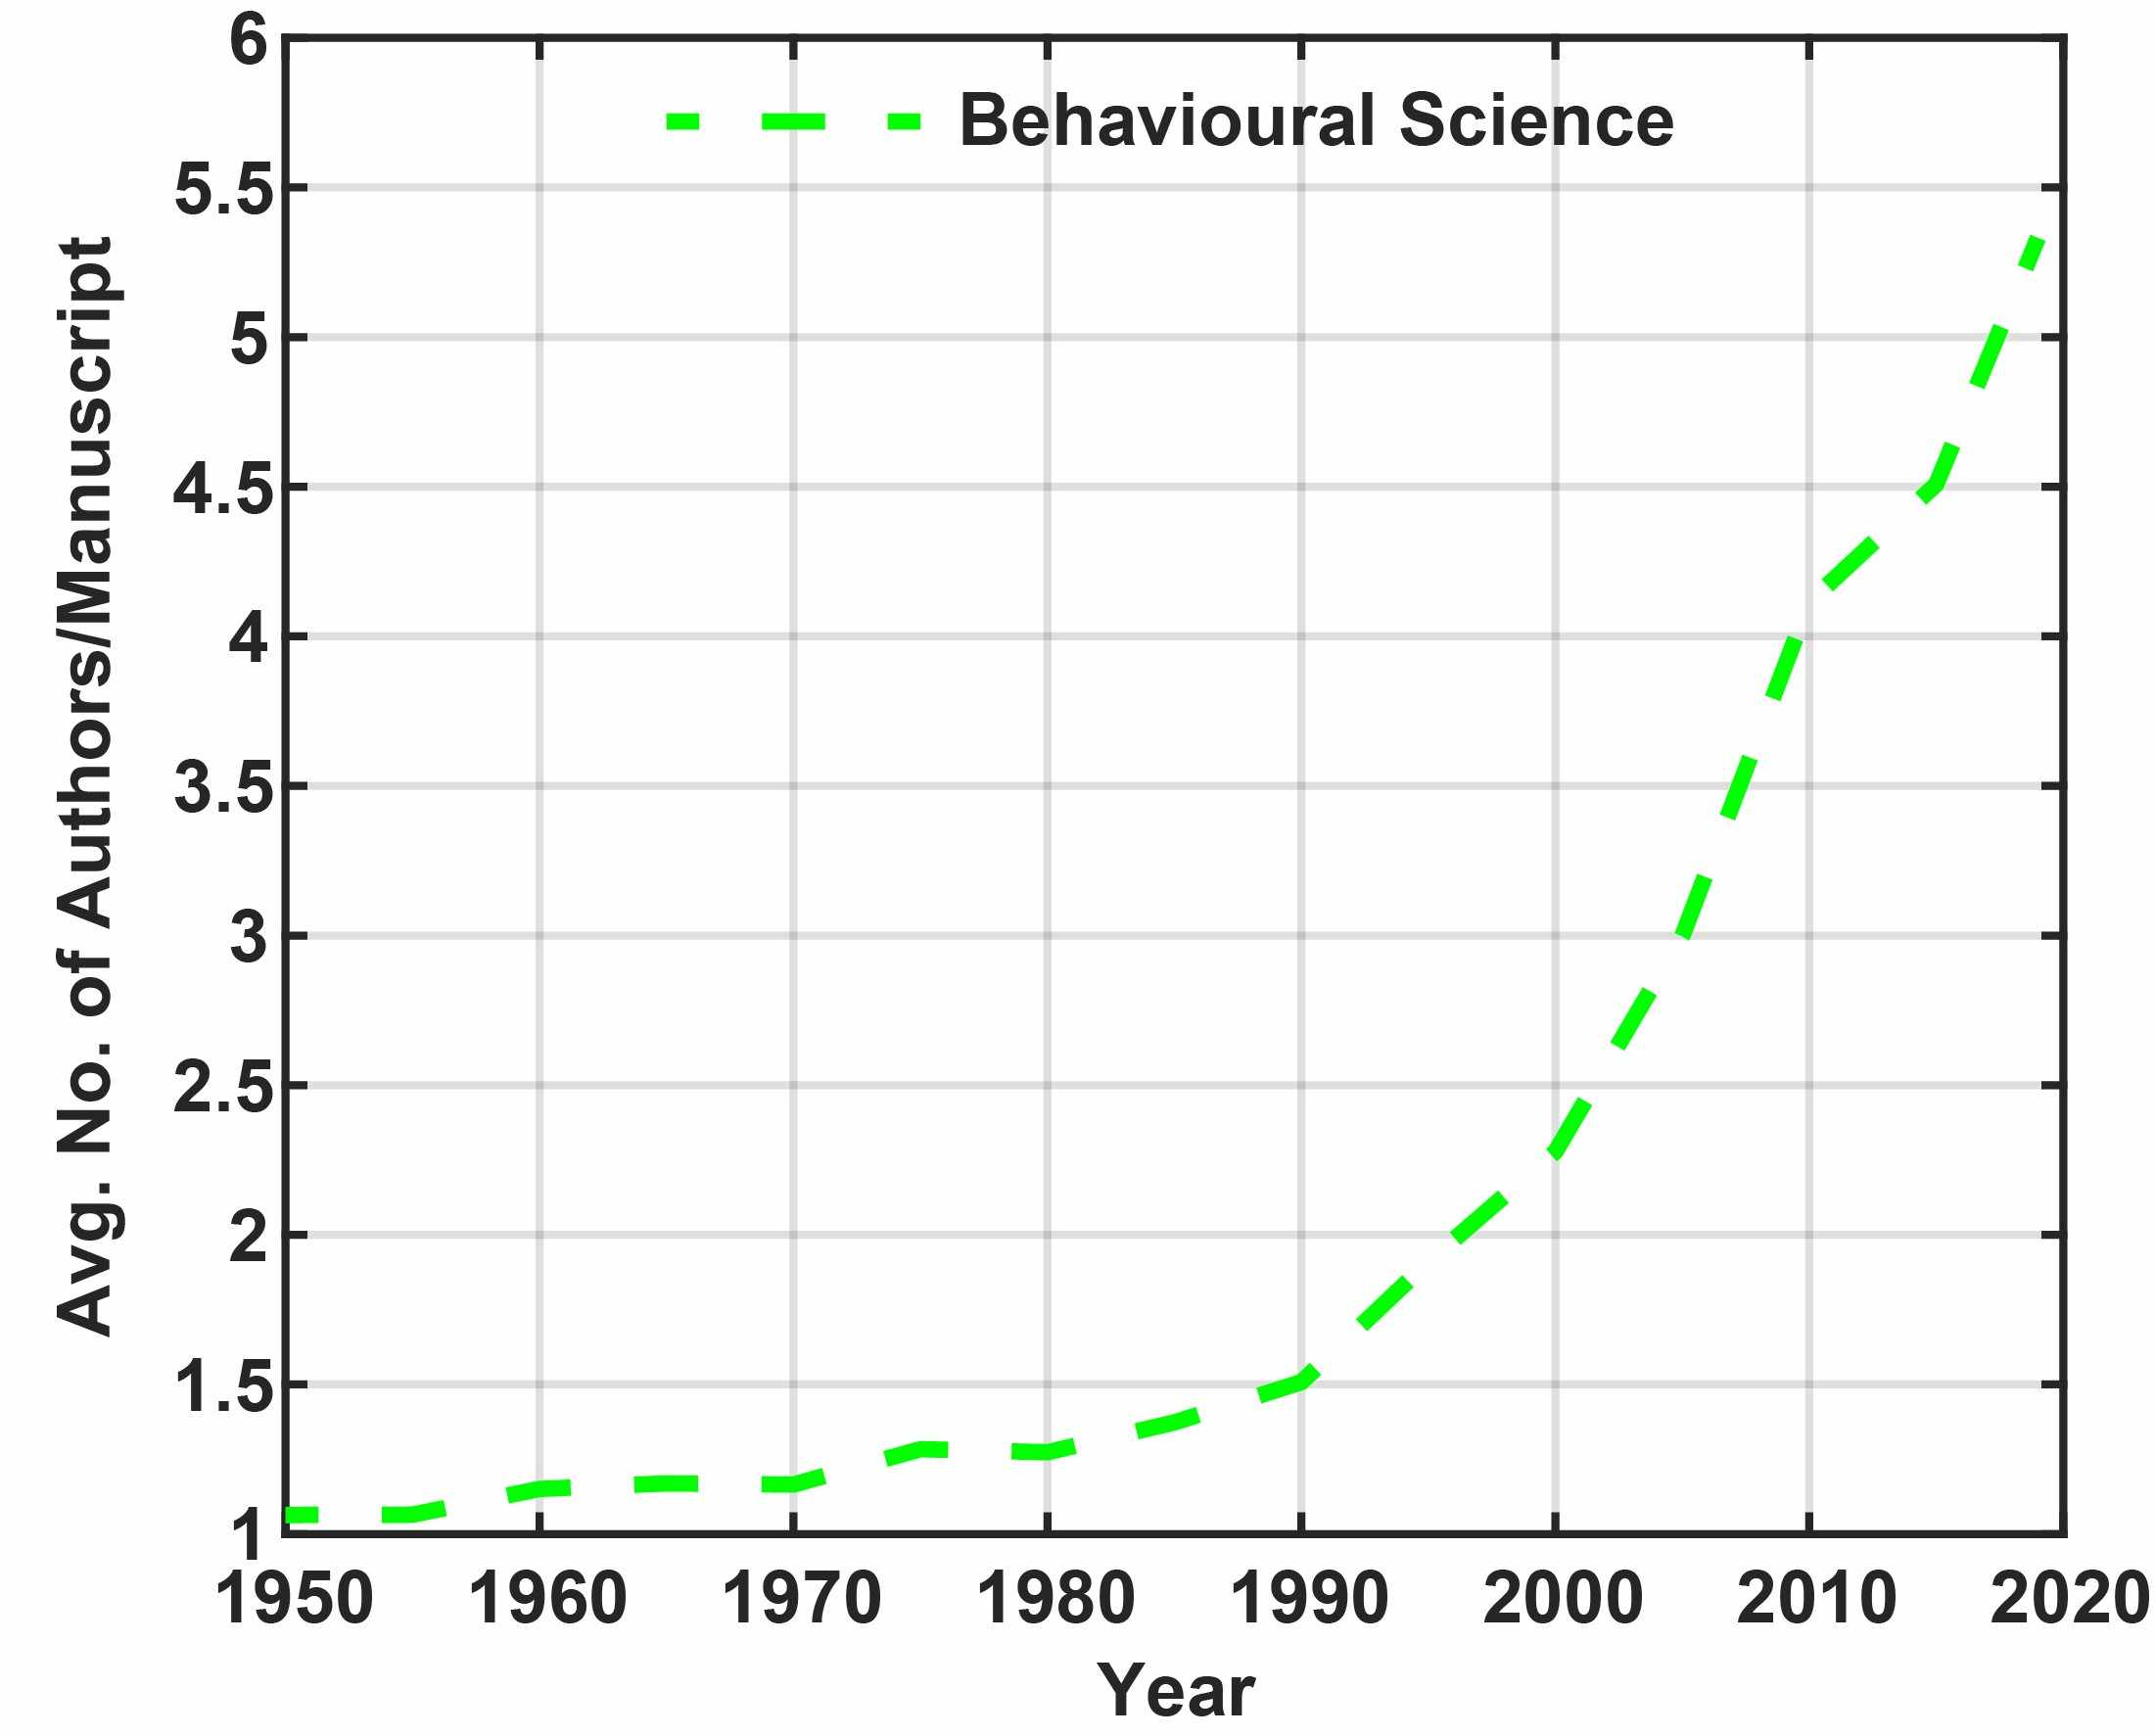 Increasing trend in number of authors per manuscript in Behavioural Science